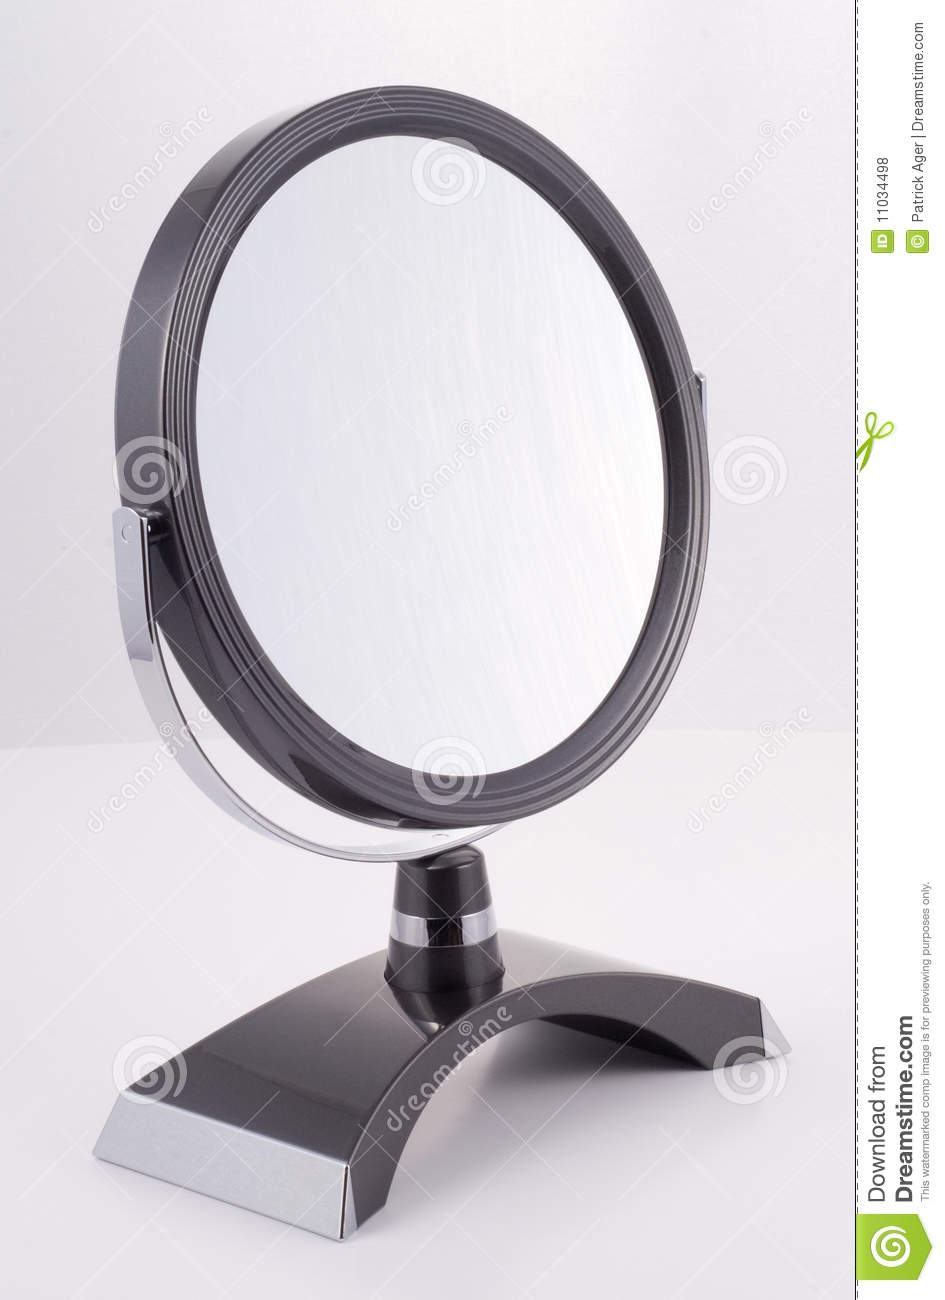 Bathroom mirror clip art - Bathroom Mirror Clip Art Illustrations Clipart Guide